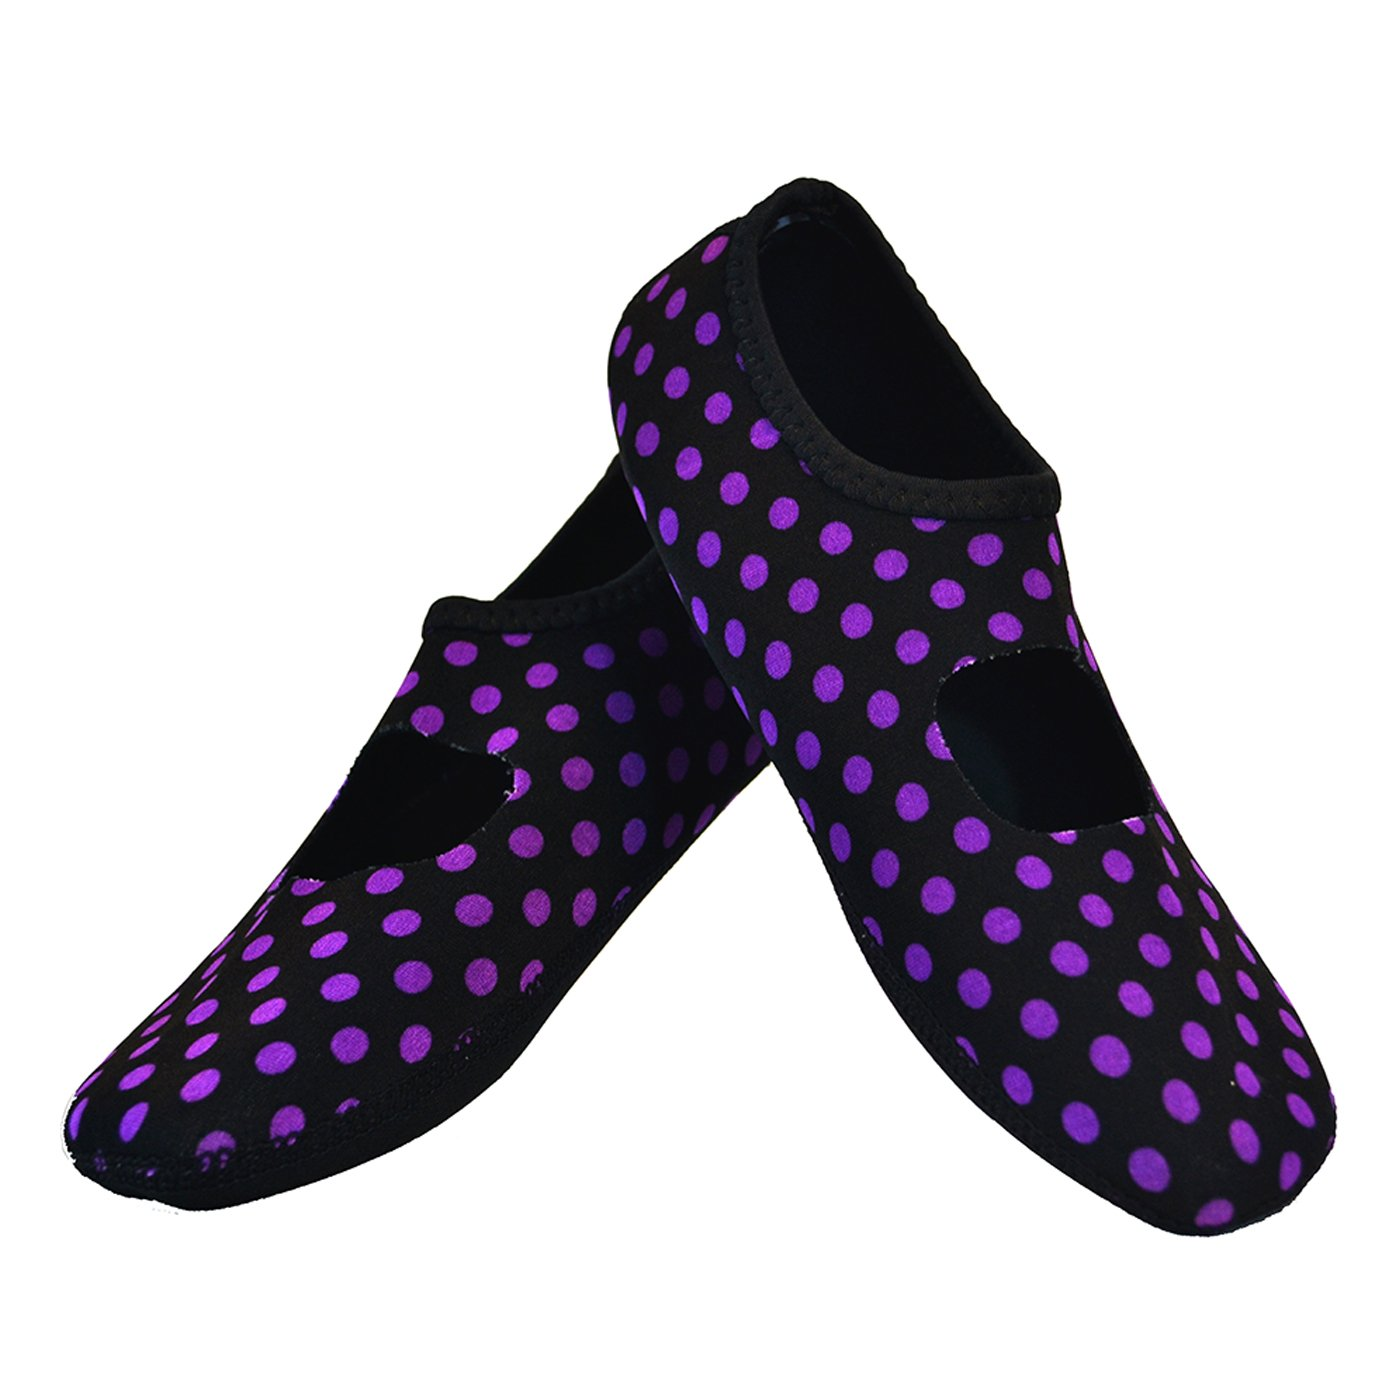 NuFoot Mary Janes Women's Shoes, Best Foldable & Flexible Flats, Slipper Socks, Travel Slippers & Exercise Shoes, Dance Shoes, Yoga Socks, House Shoes, Indoor Slippers, Black/Purple Polka Dots, Small